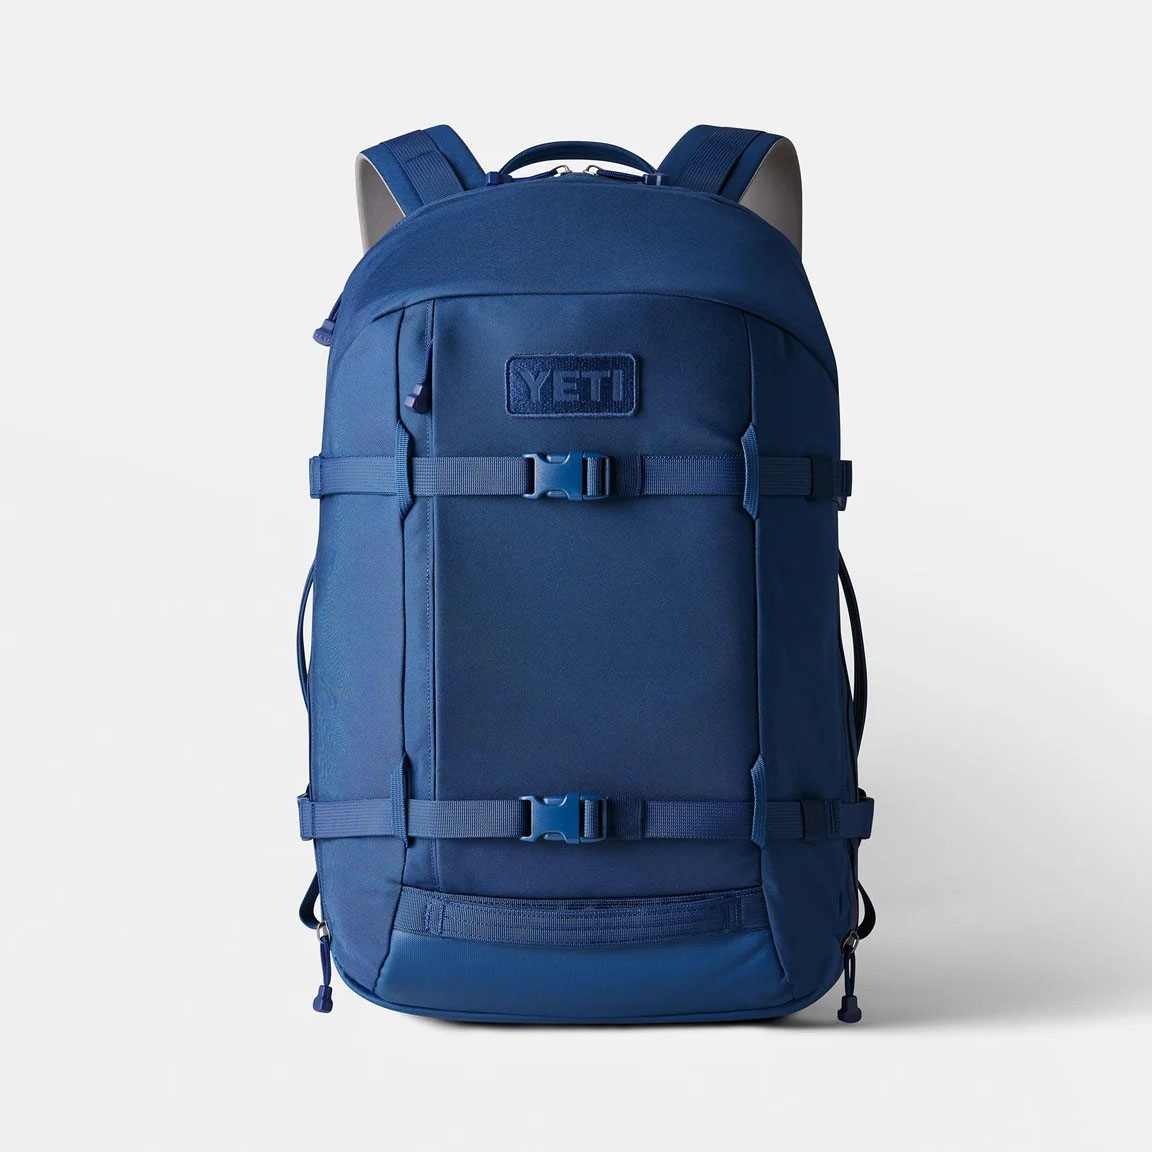 YETI Crossroads 27L Backpack